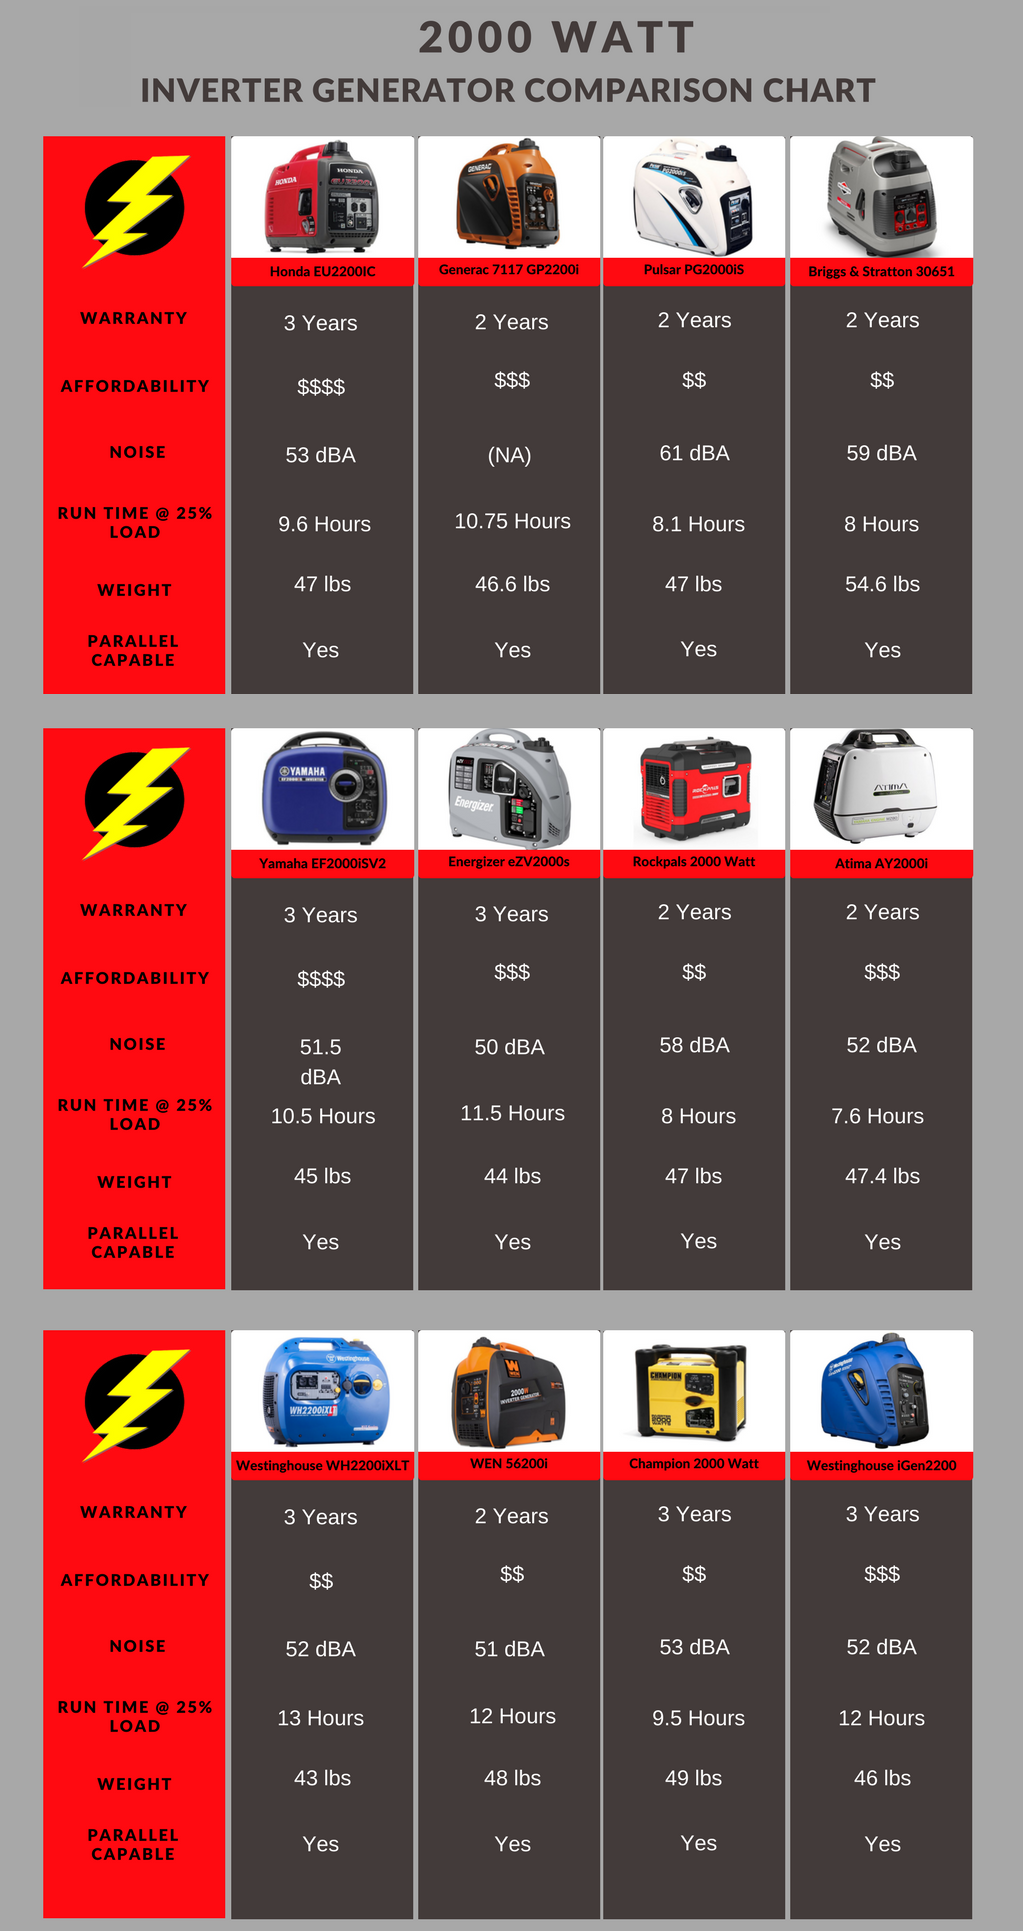 2000 watt inverter generator comparison chart